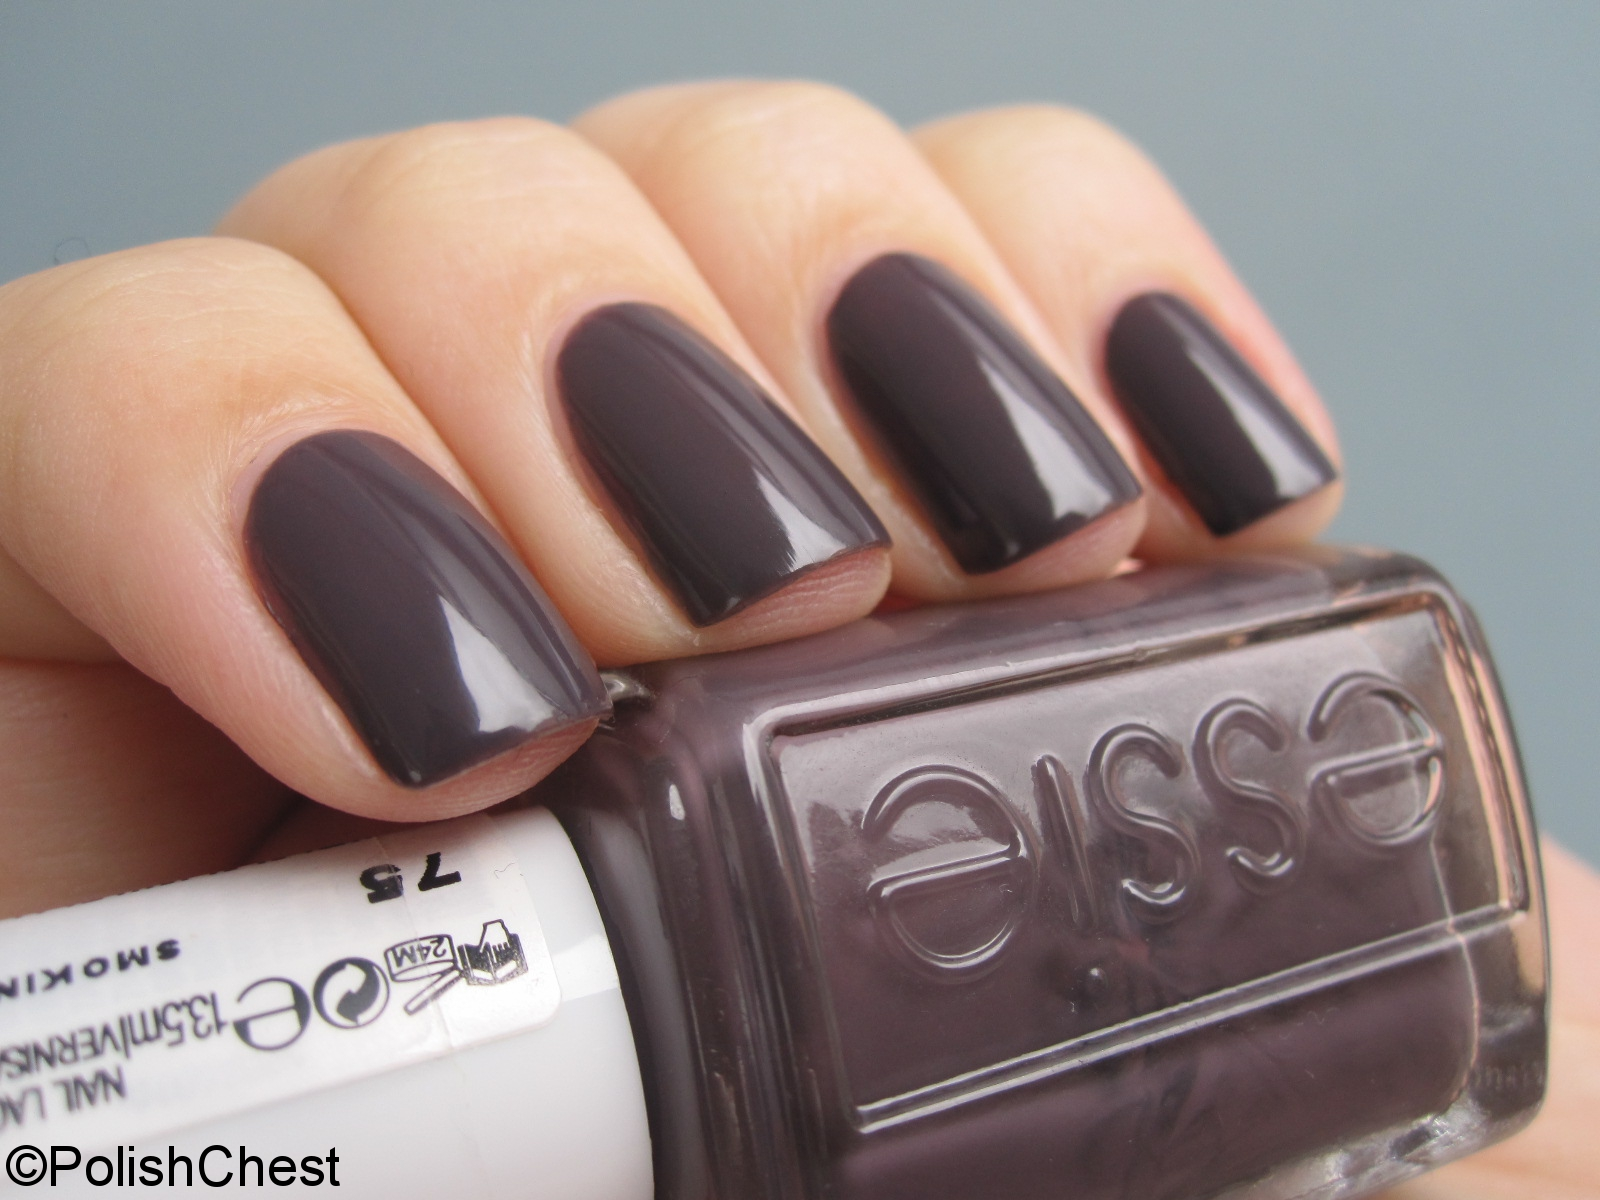 Polish Chest: essie - Smokin Hot